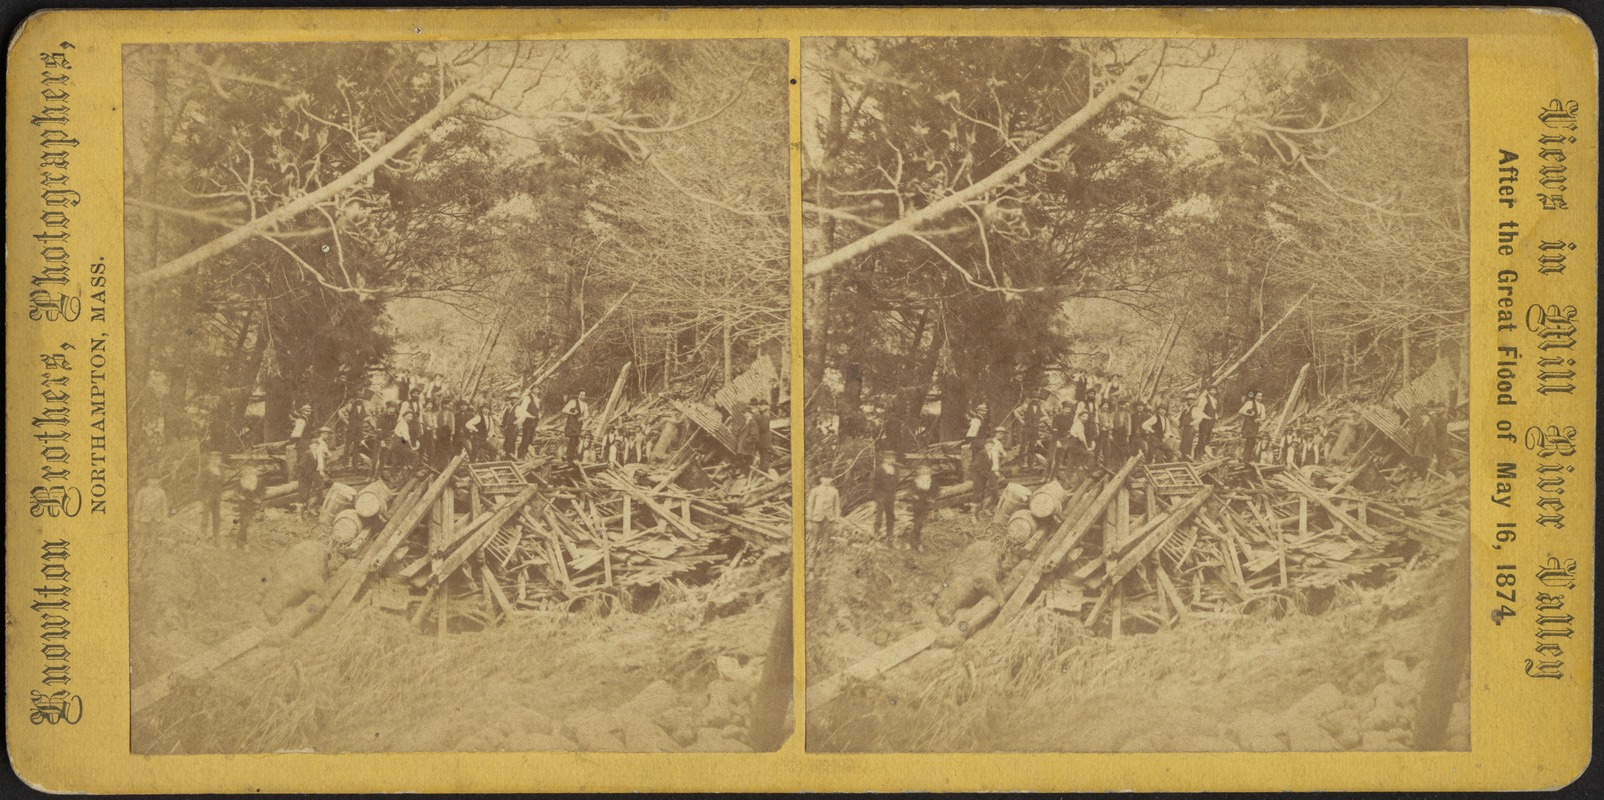 Group of men standing by a pile of timber and debris left by the Mill River Valley flood